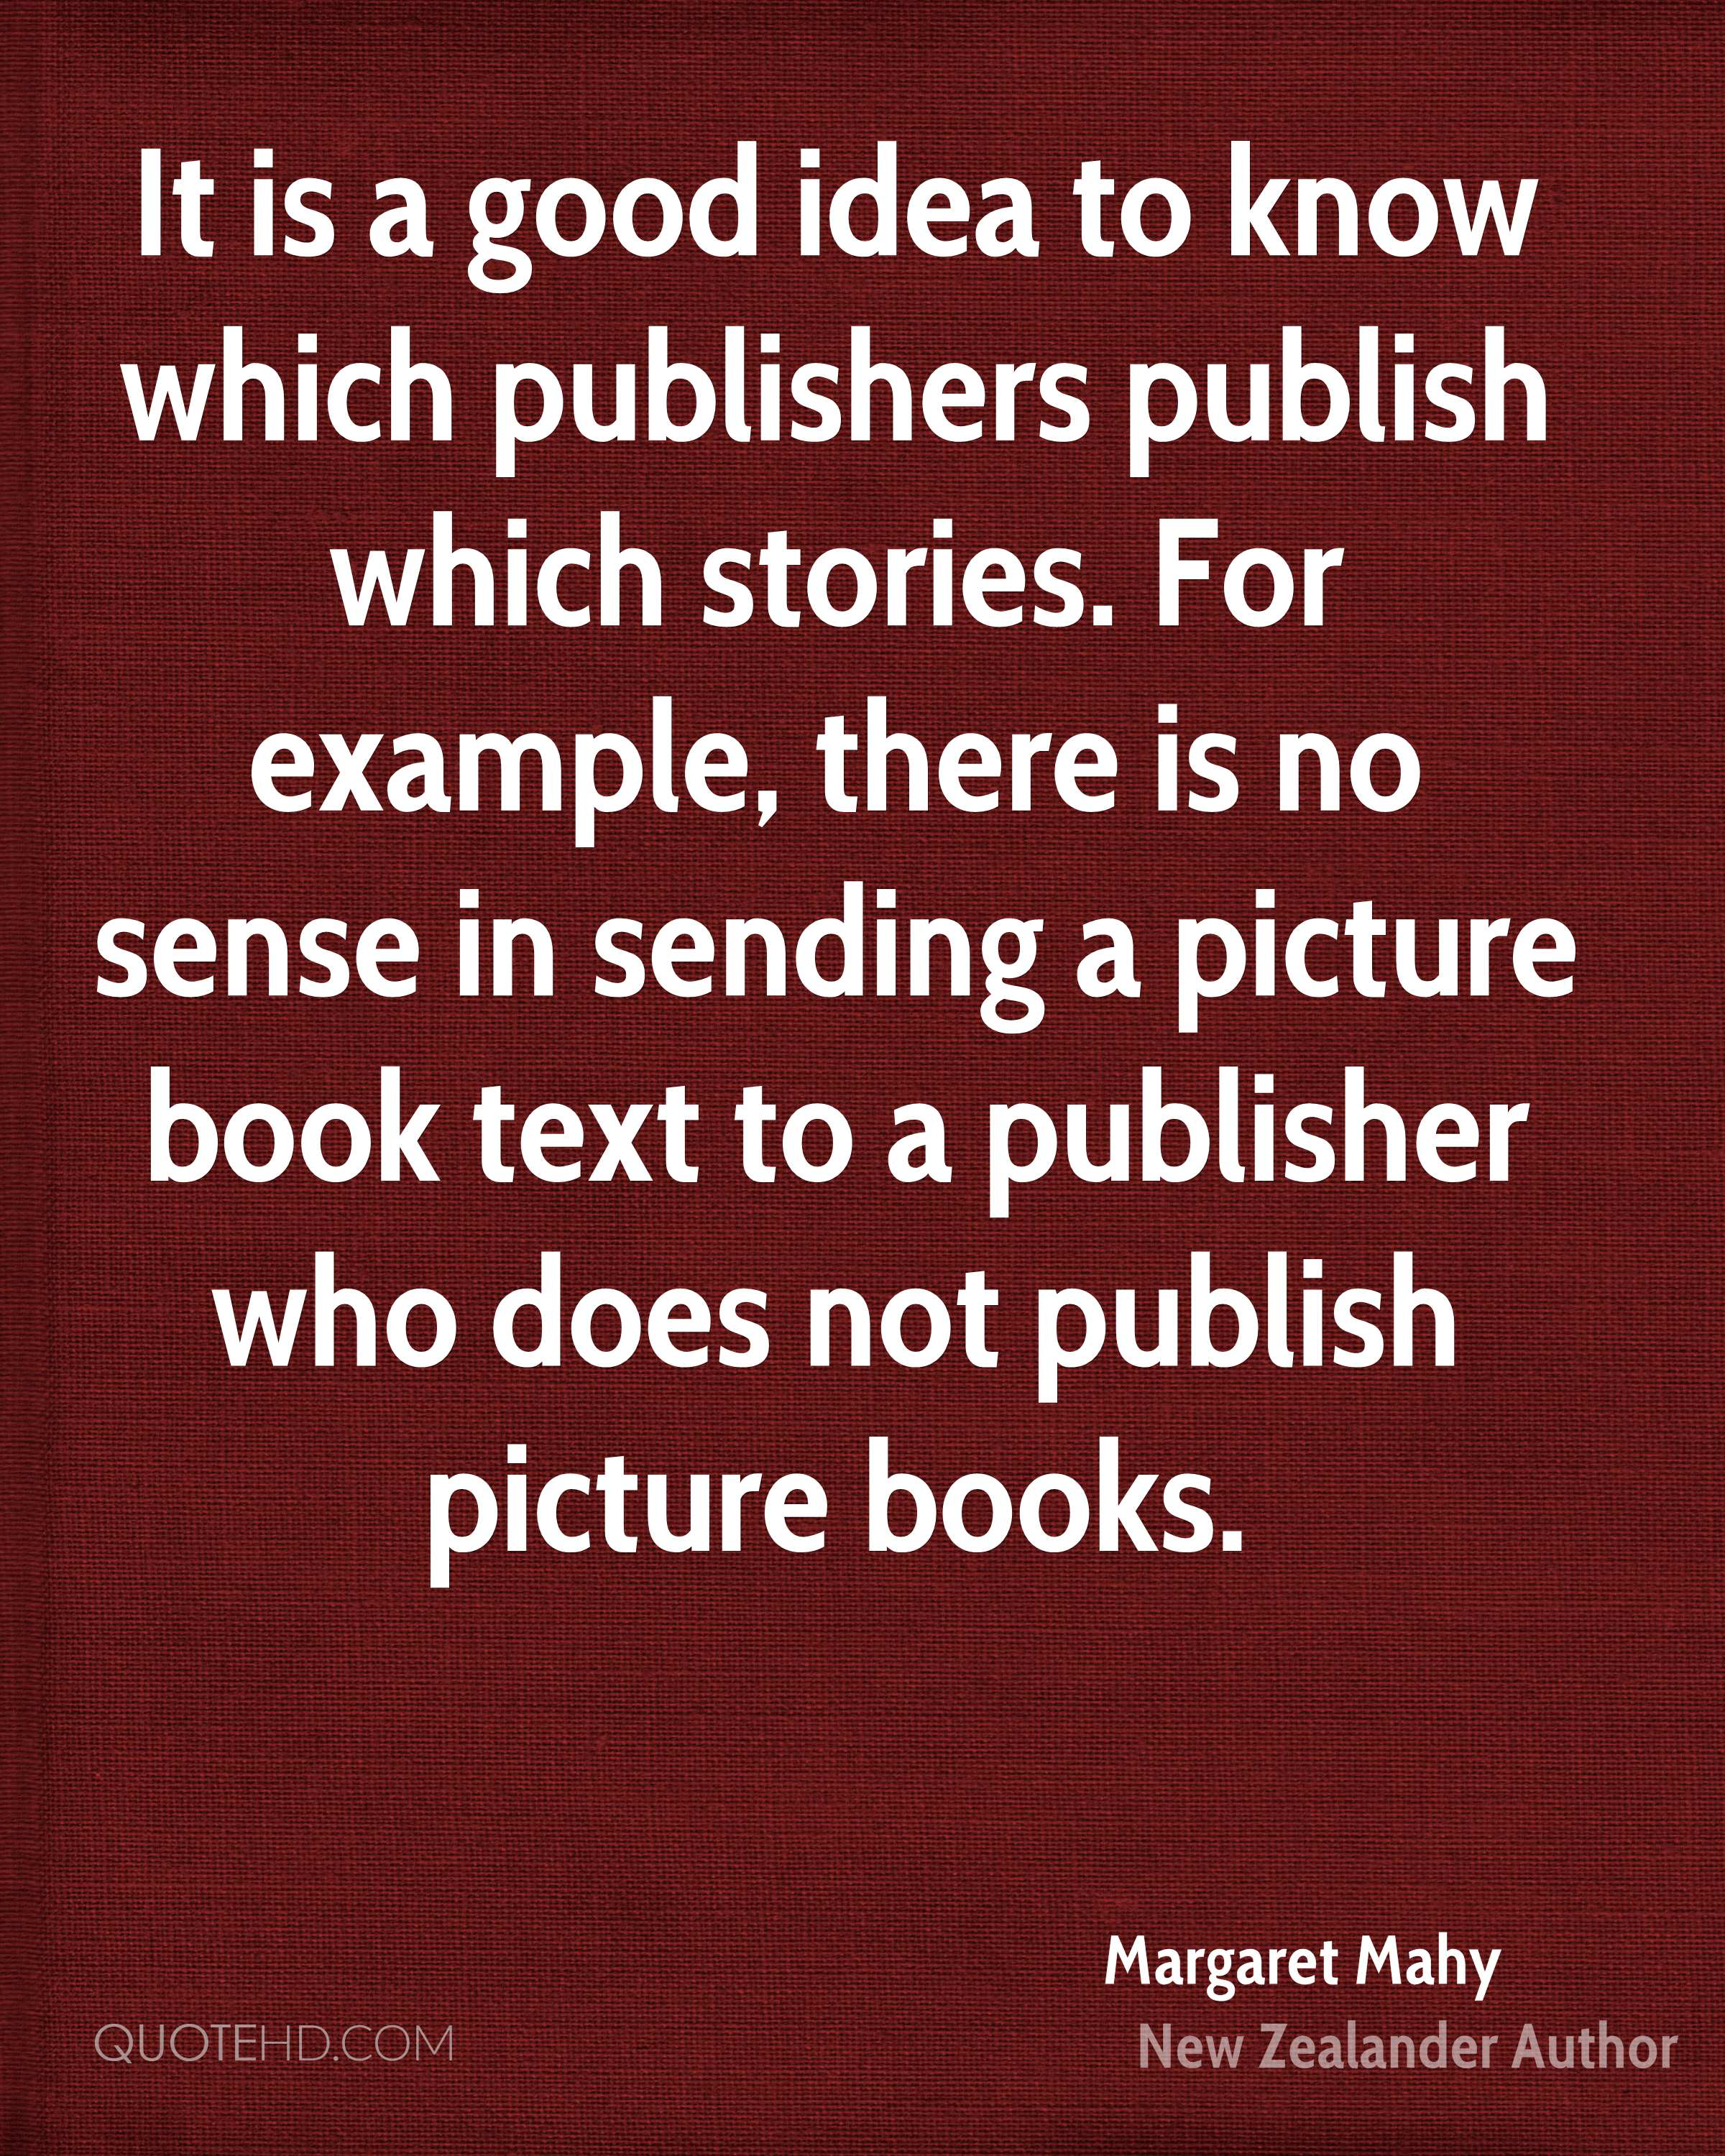 It is a good idea to know which publishers publish which stories. For example, there is no sense in sending a picture book text to a publisher who does not publish picture books.